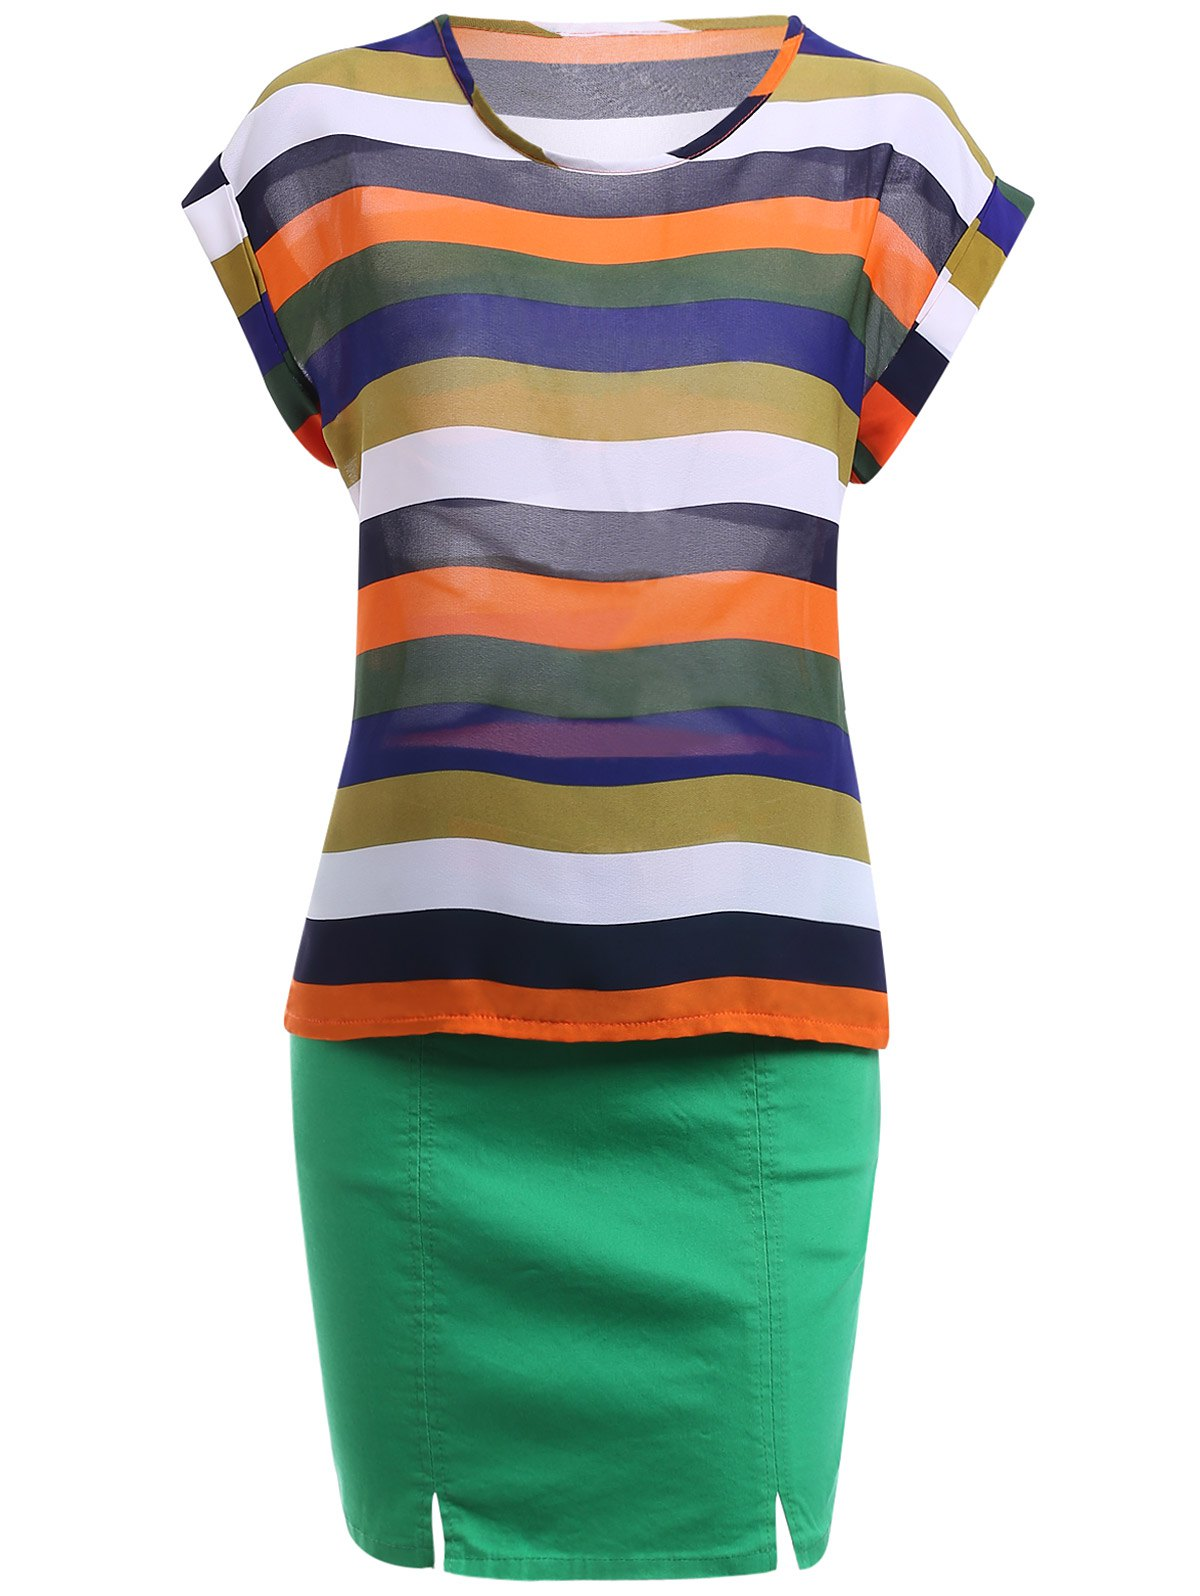 Stylish Women's Short Sleeve Striped T-Shirt + Skirt Twinset